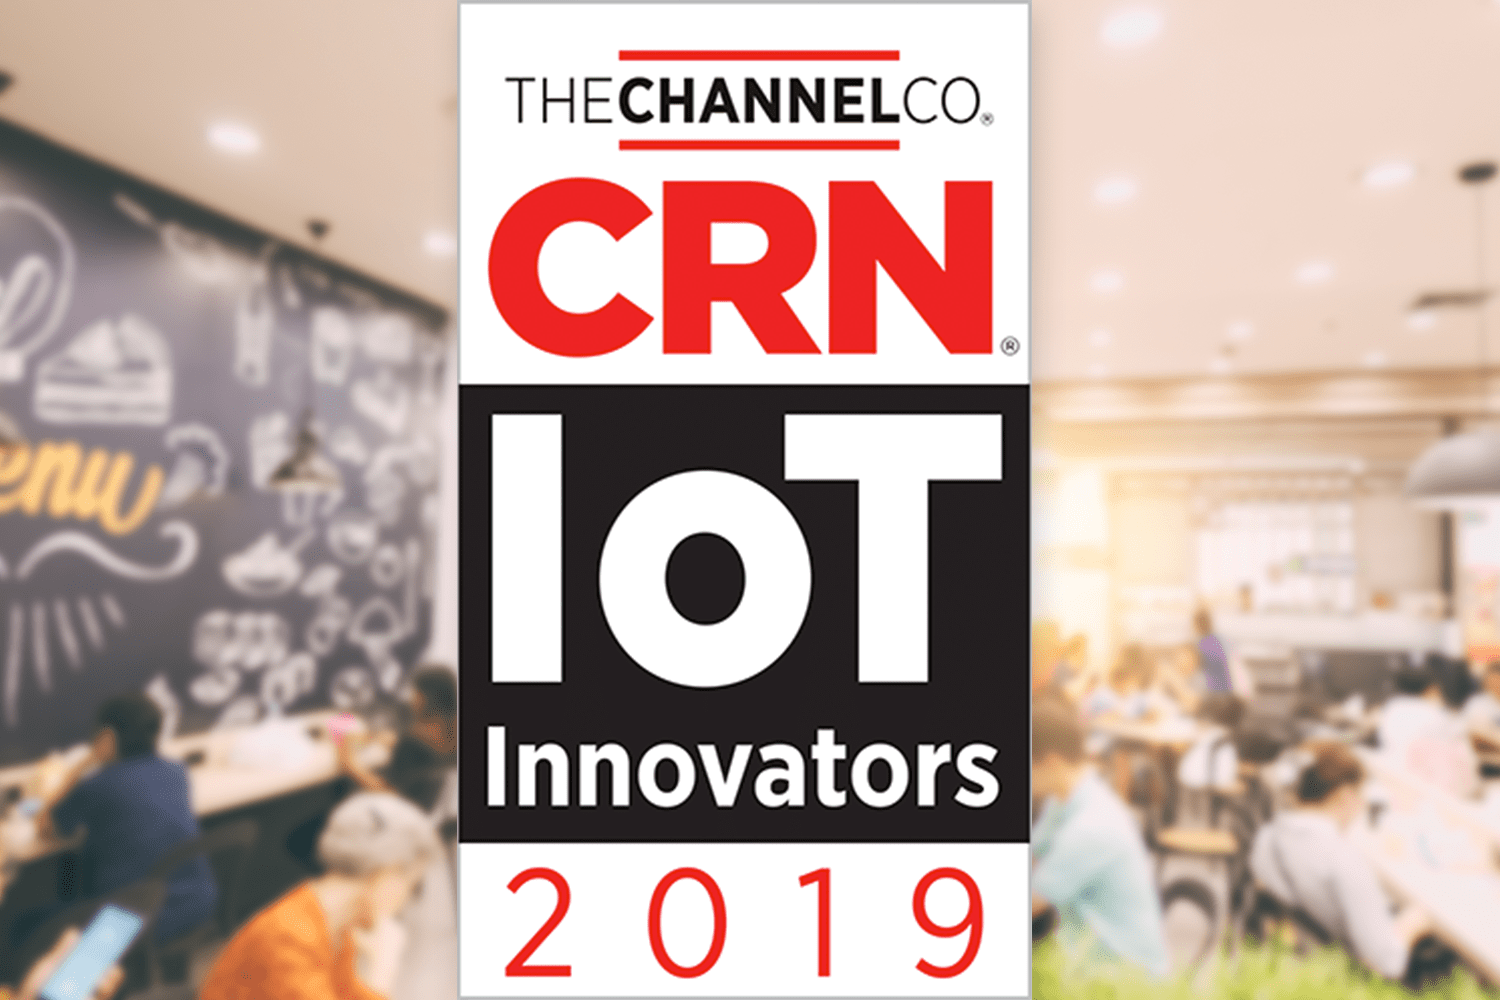 Wachter Recognized as one of top Innovative IoT Companies